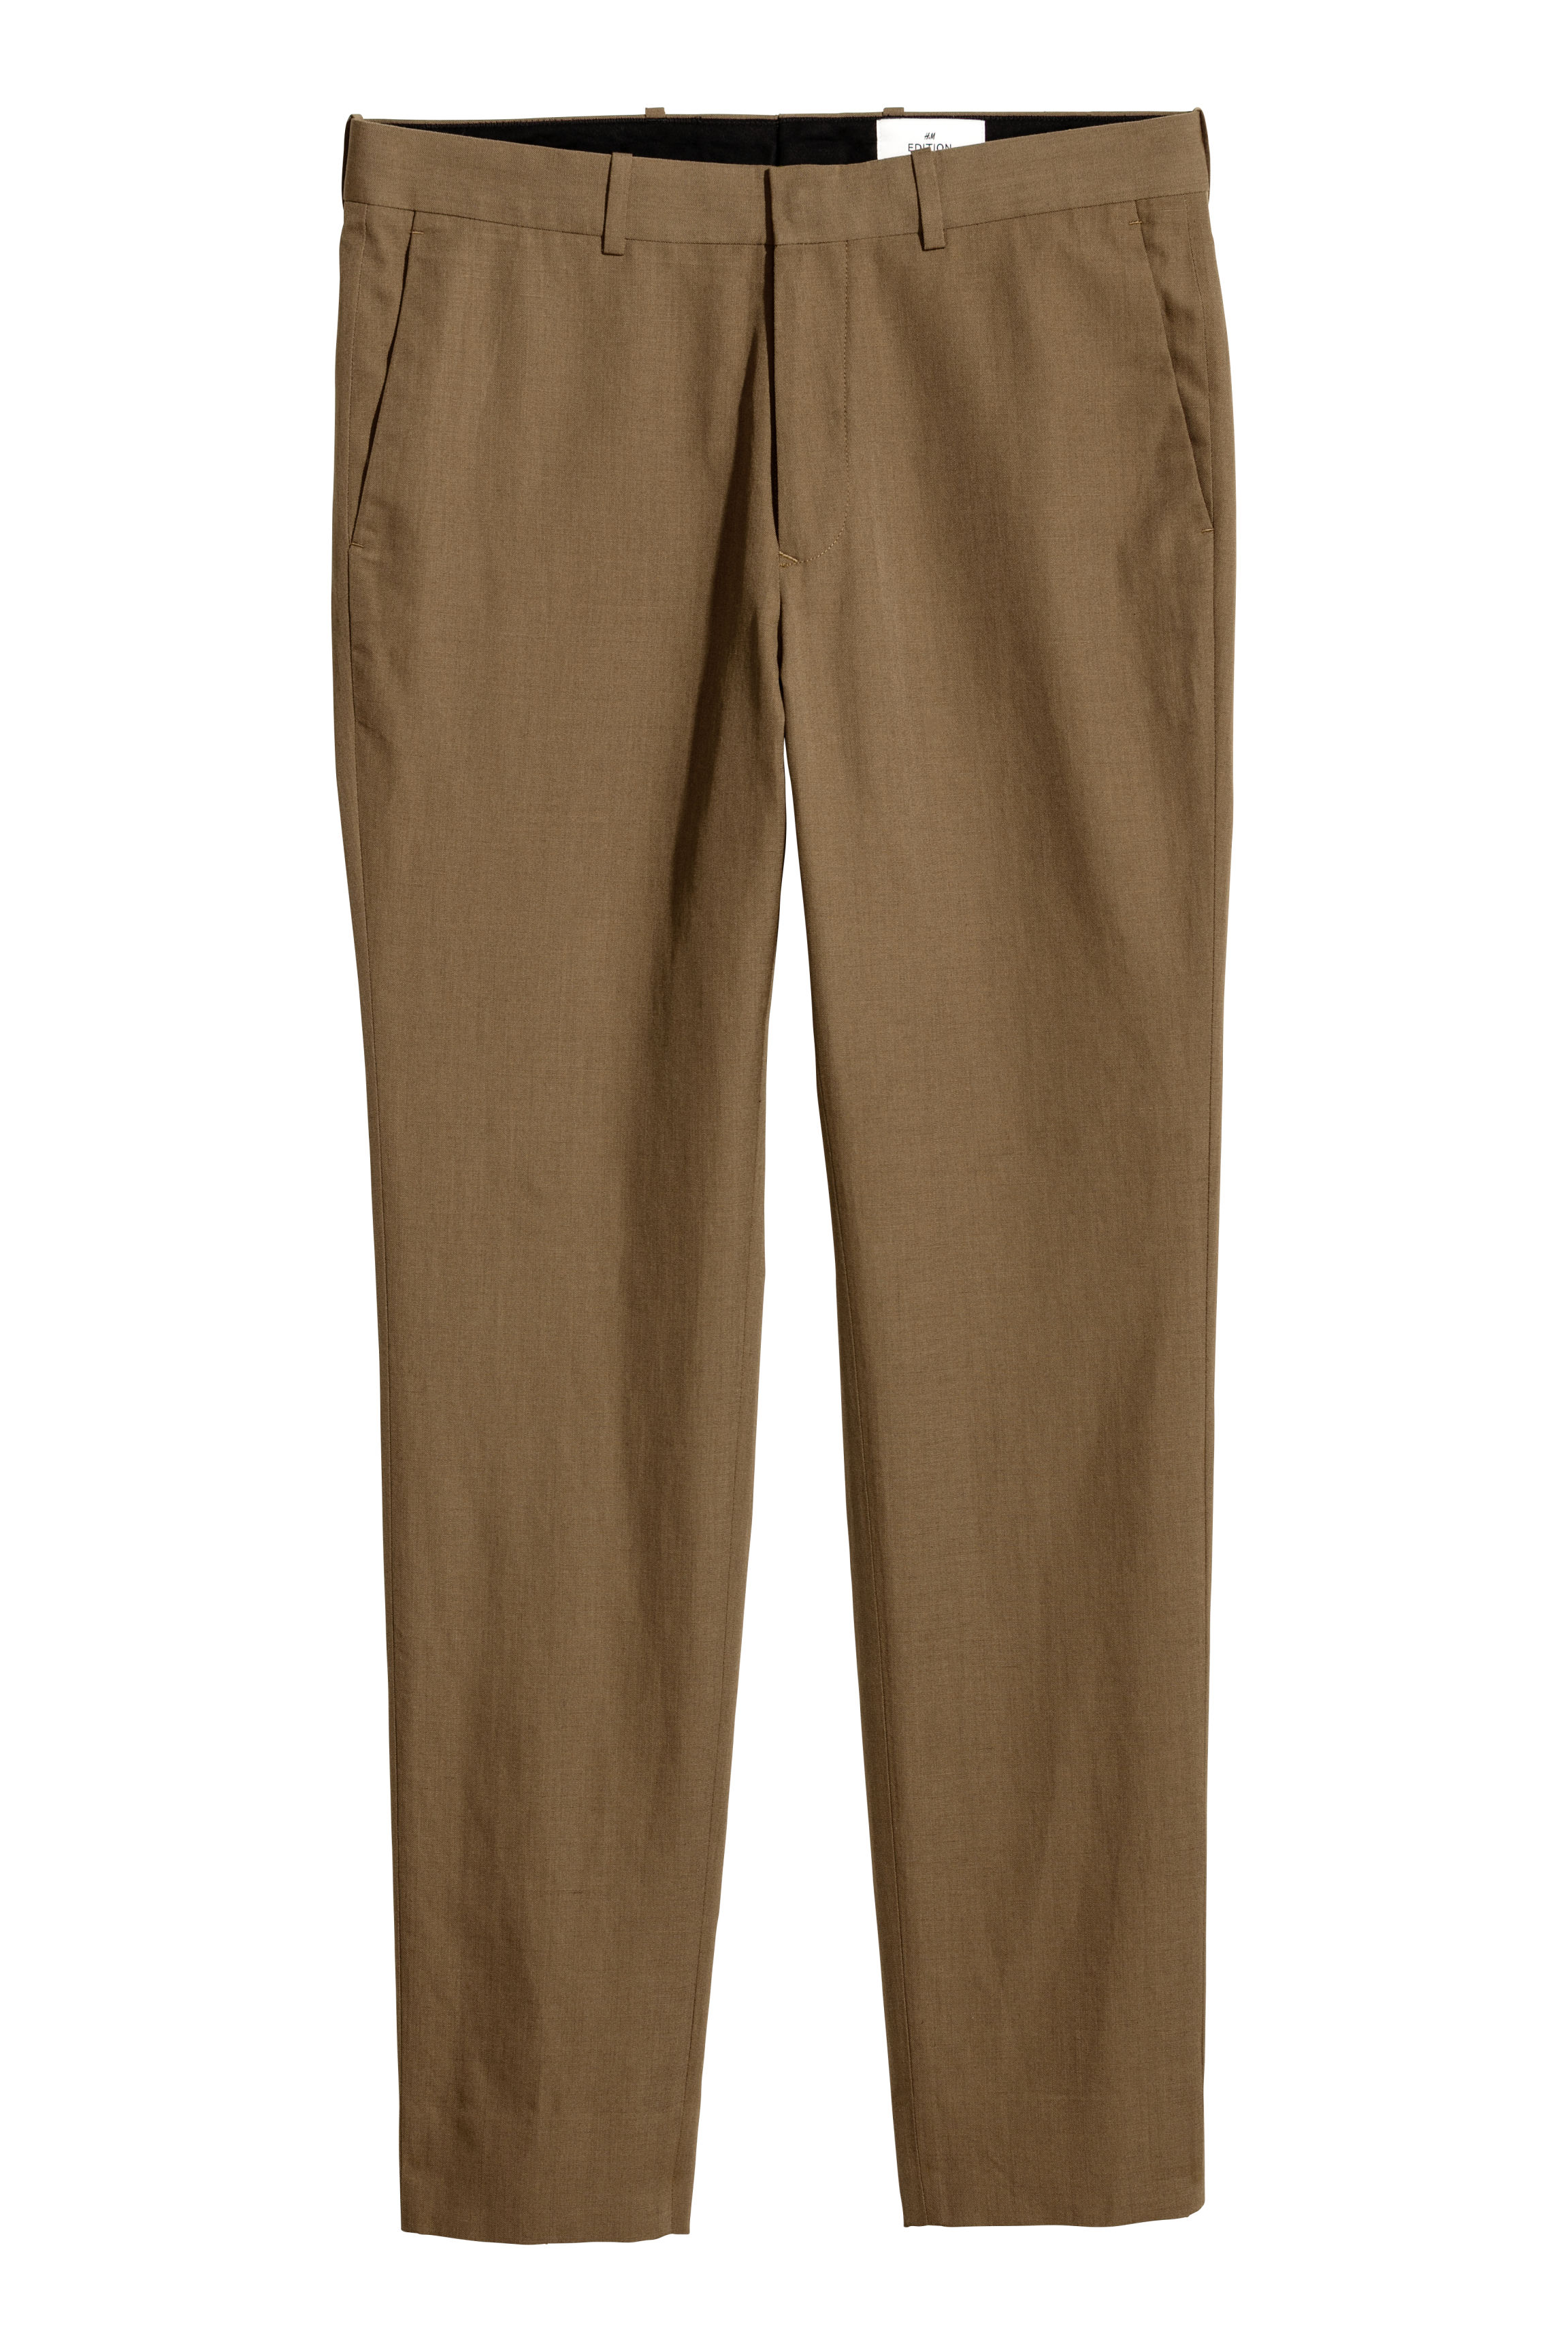 H&M Edition Light brown Wool-blend trousers